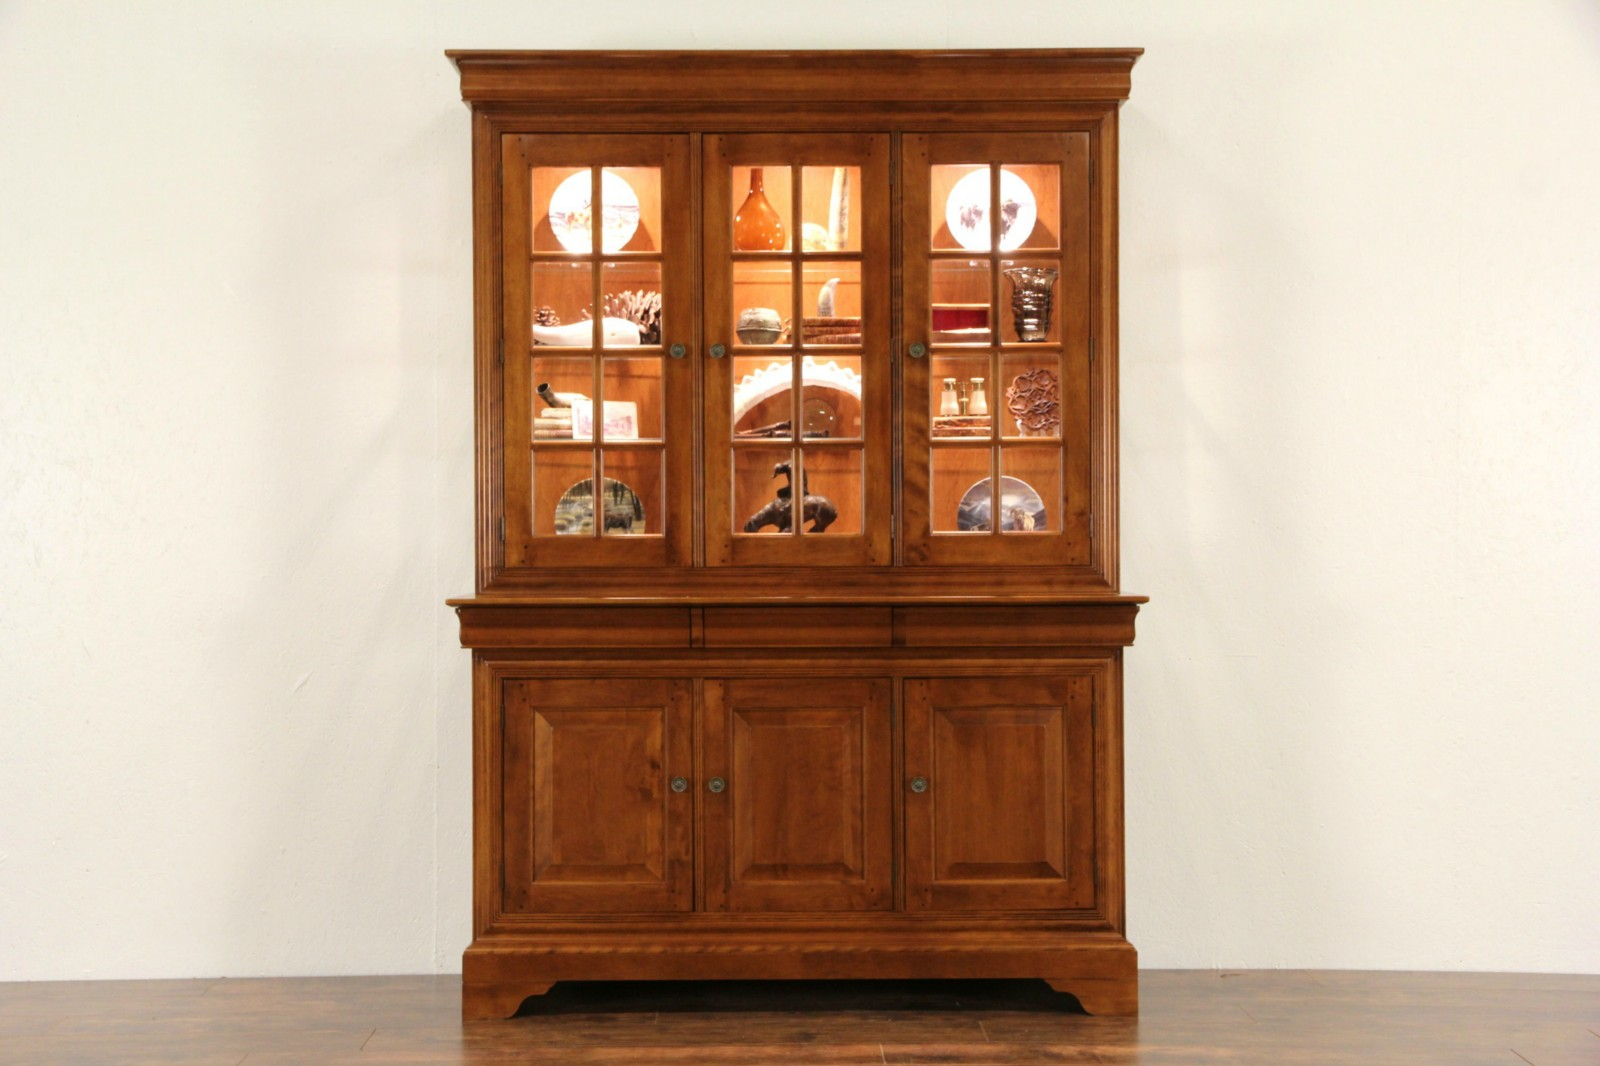 Nichols And Stone Signed Maple 1999 Lighted China Cabinet Or Bookcase